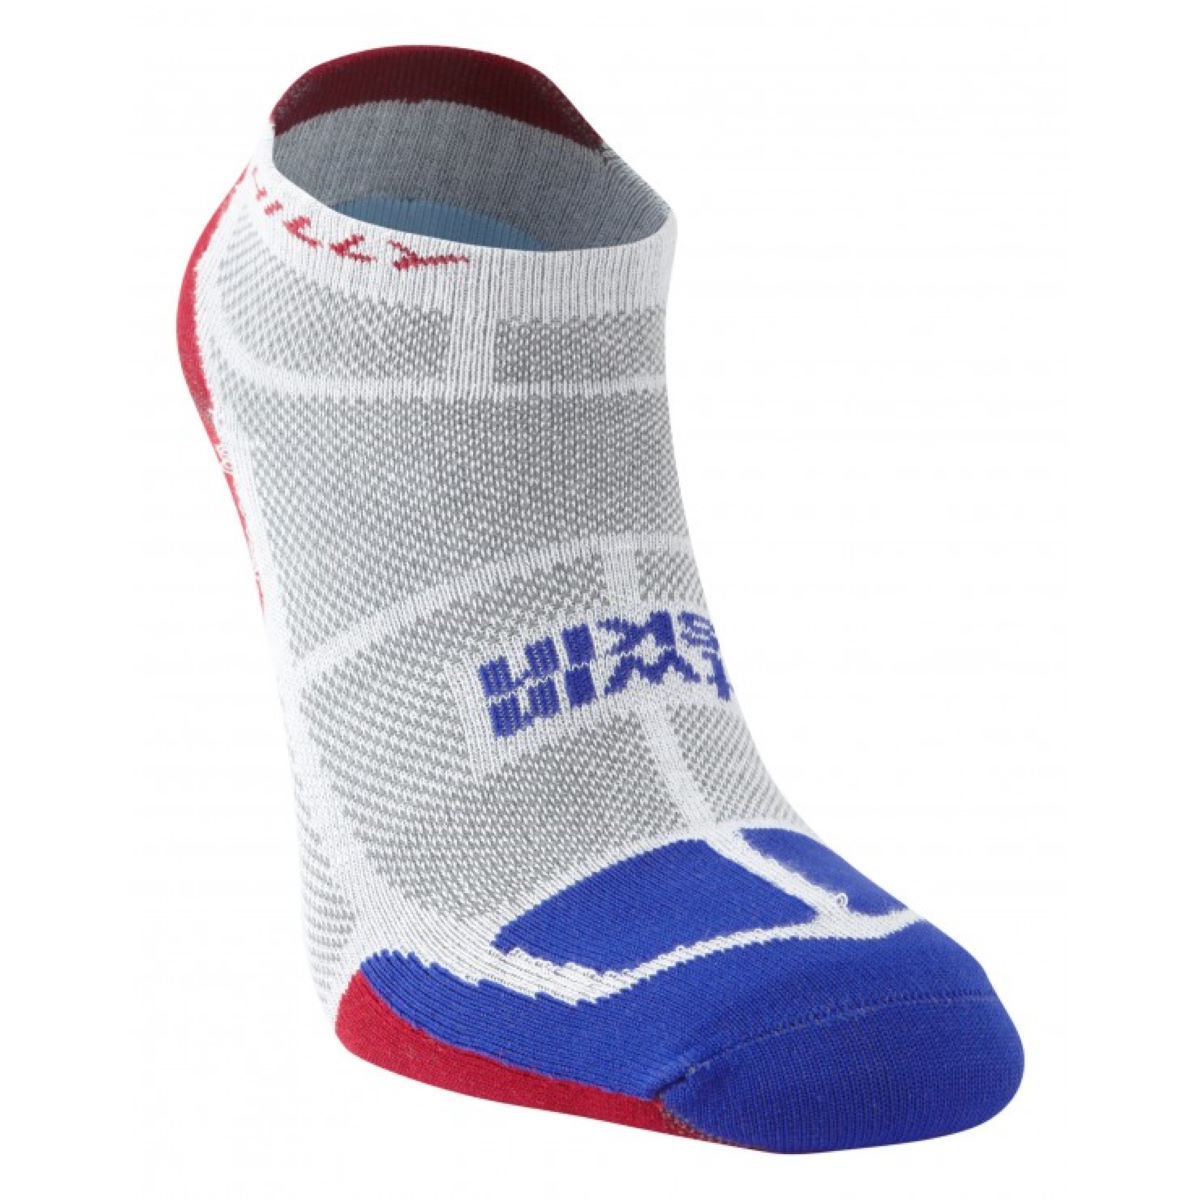 Chaussettes Hilly TwinSkin - S Grey/Blue/Red Chaussettes